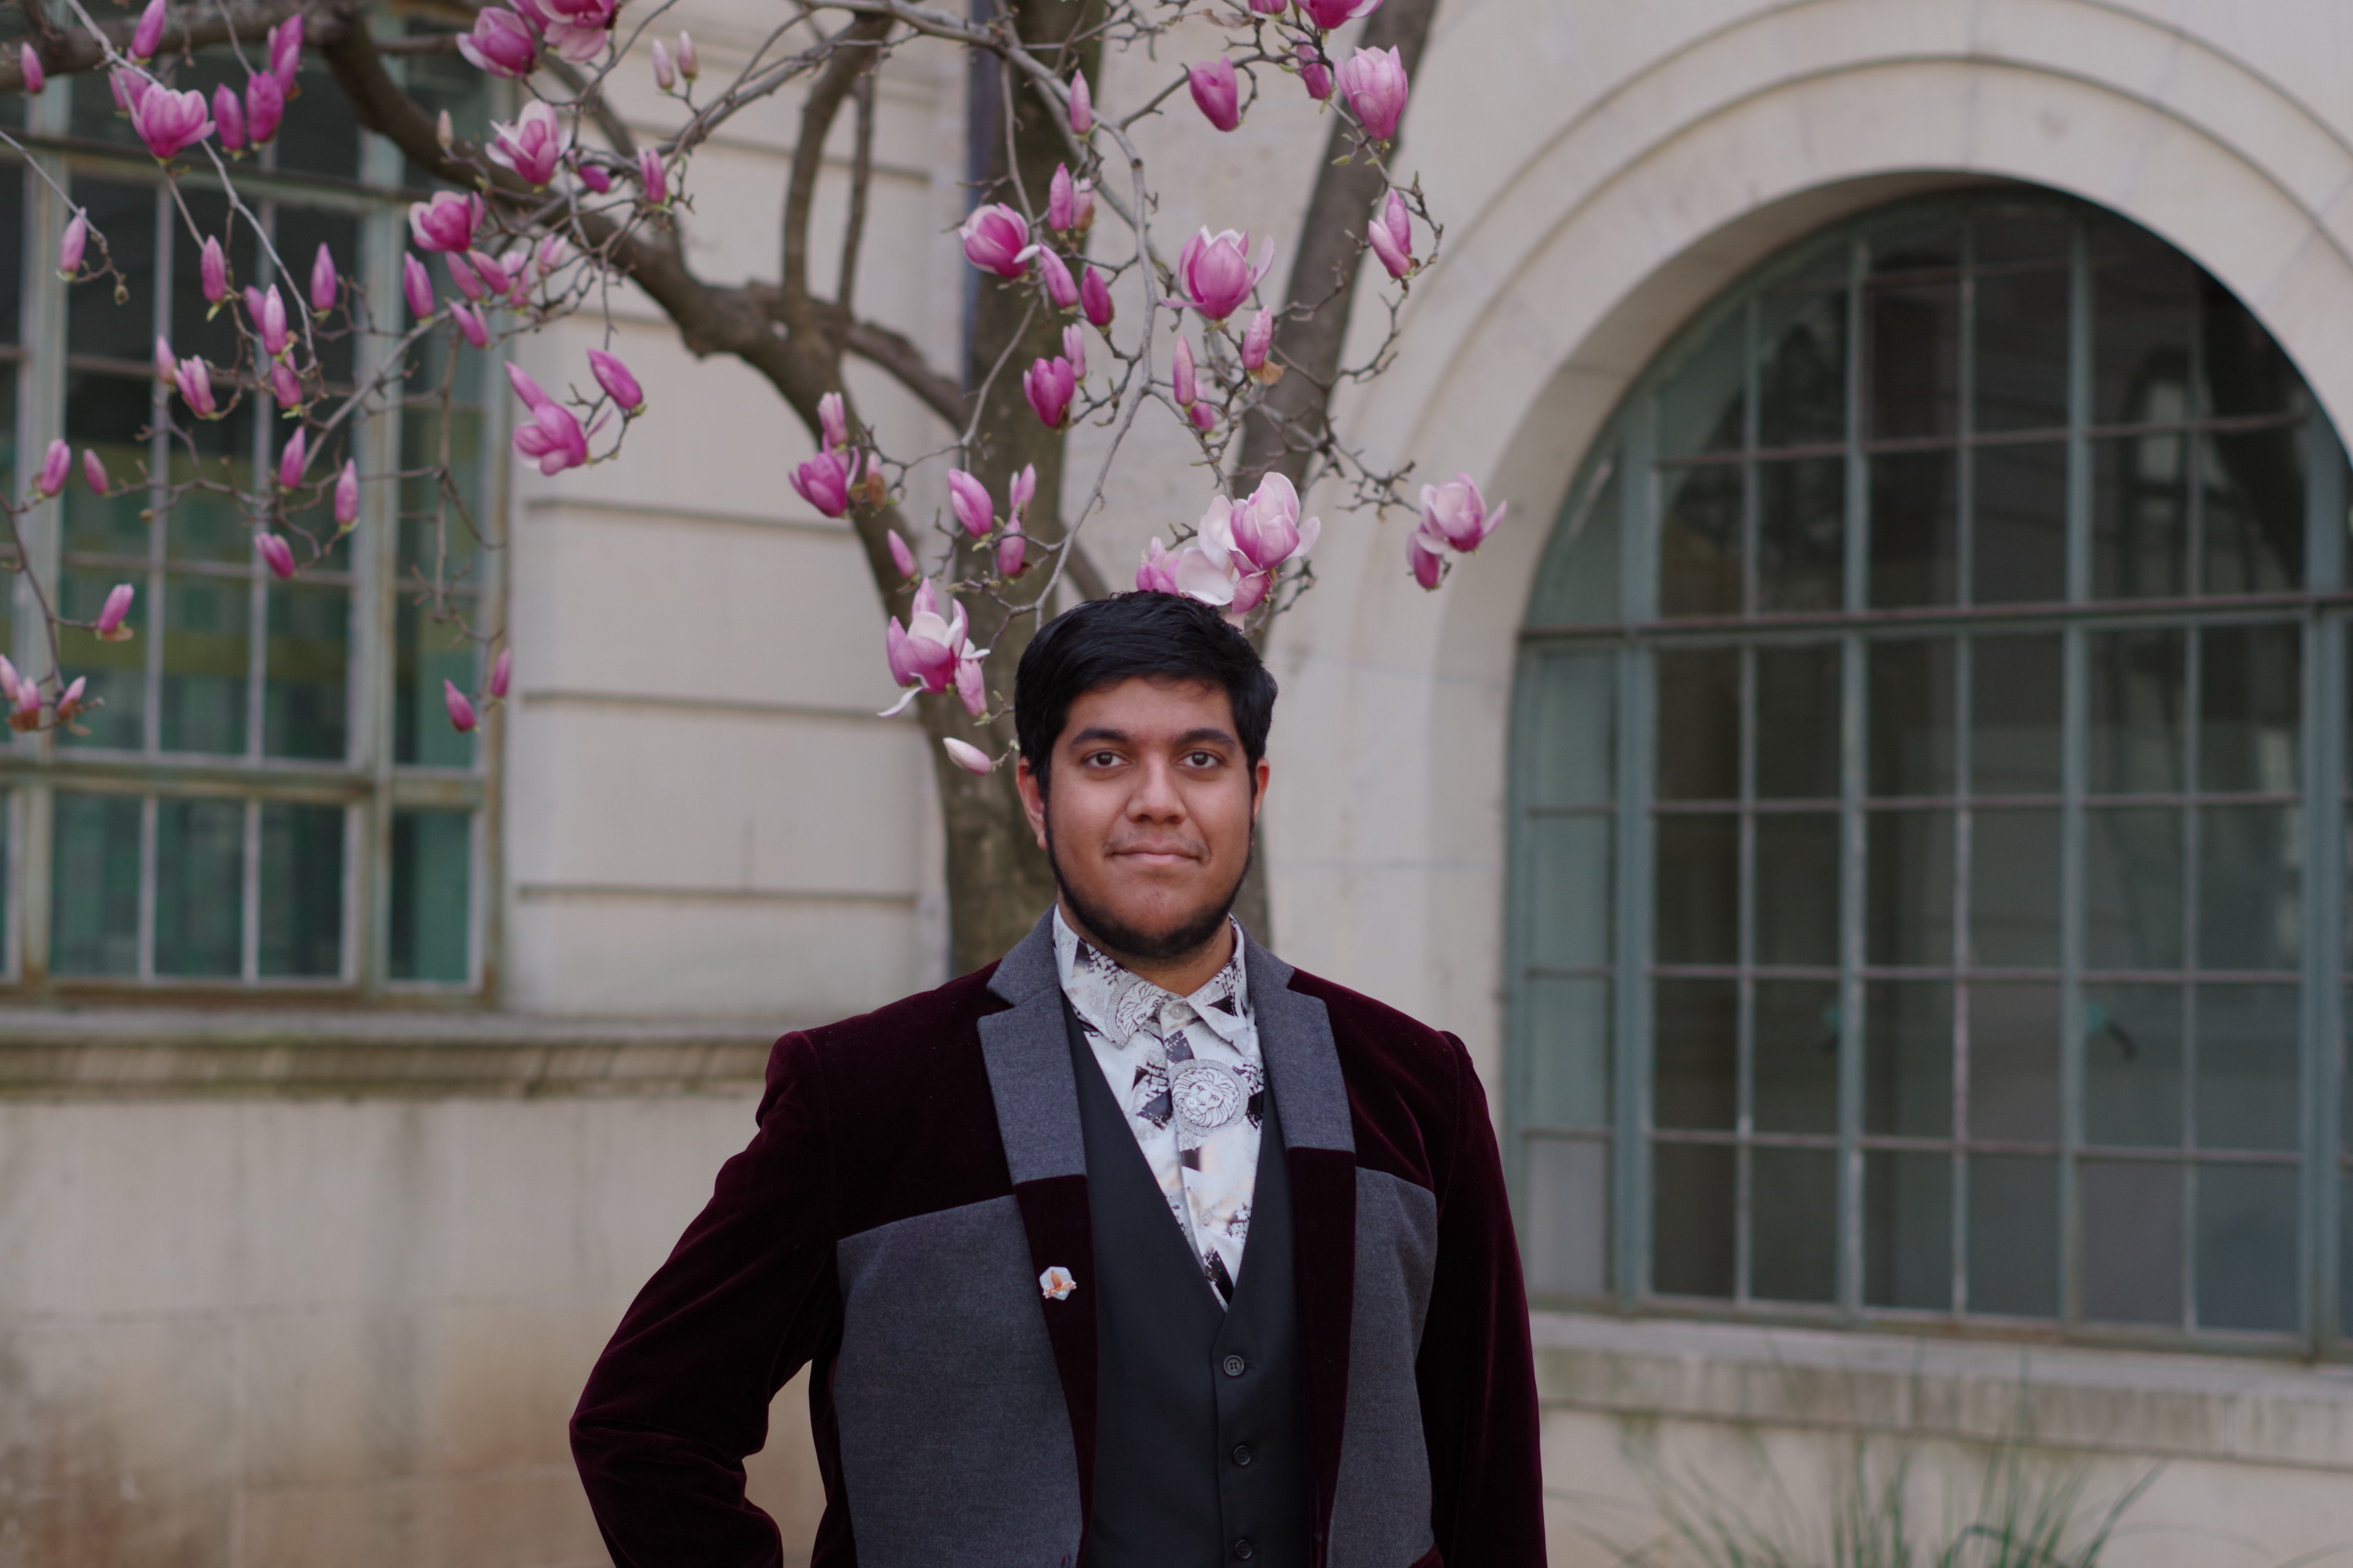 Maher Rahman wears a black and grey suit jacket while standing in front of a skinny tree with pink blooms